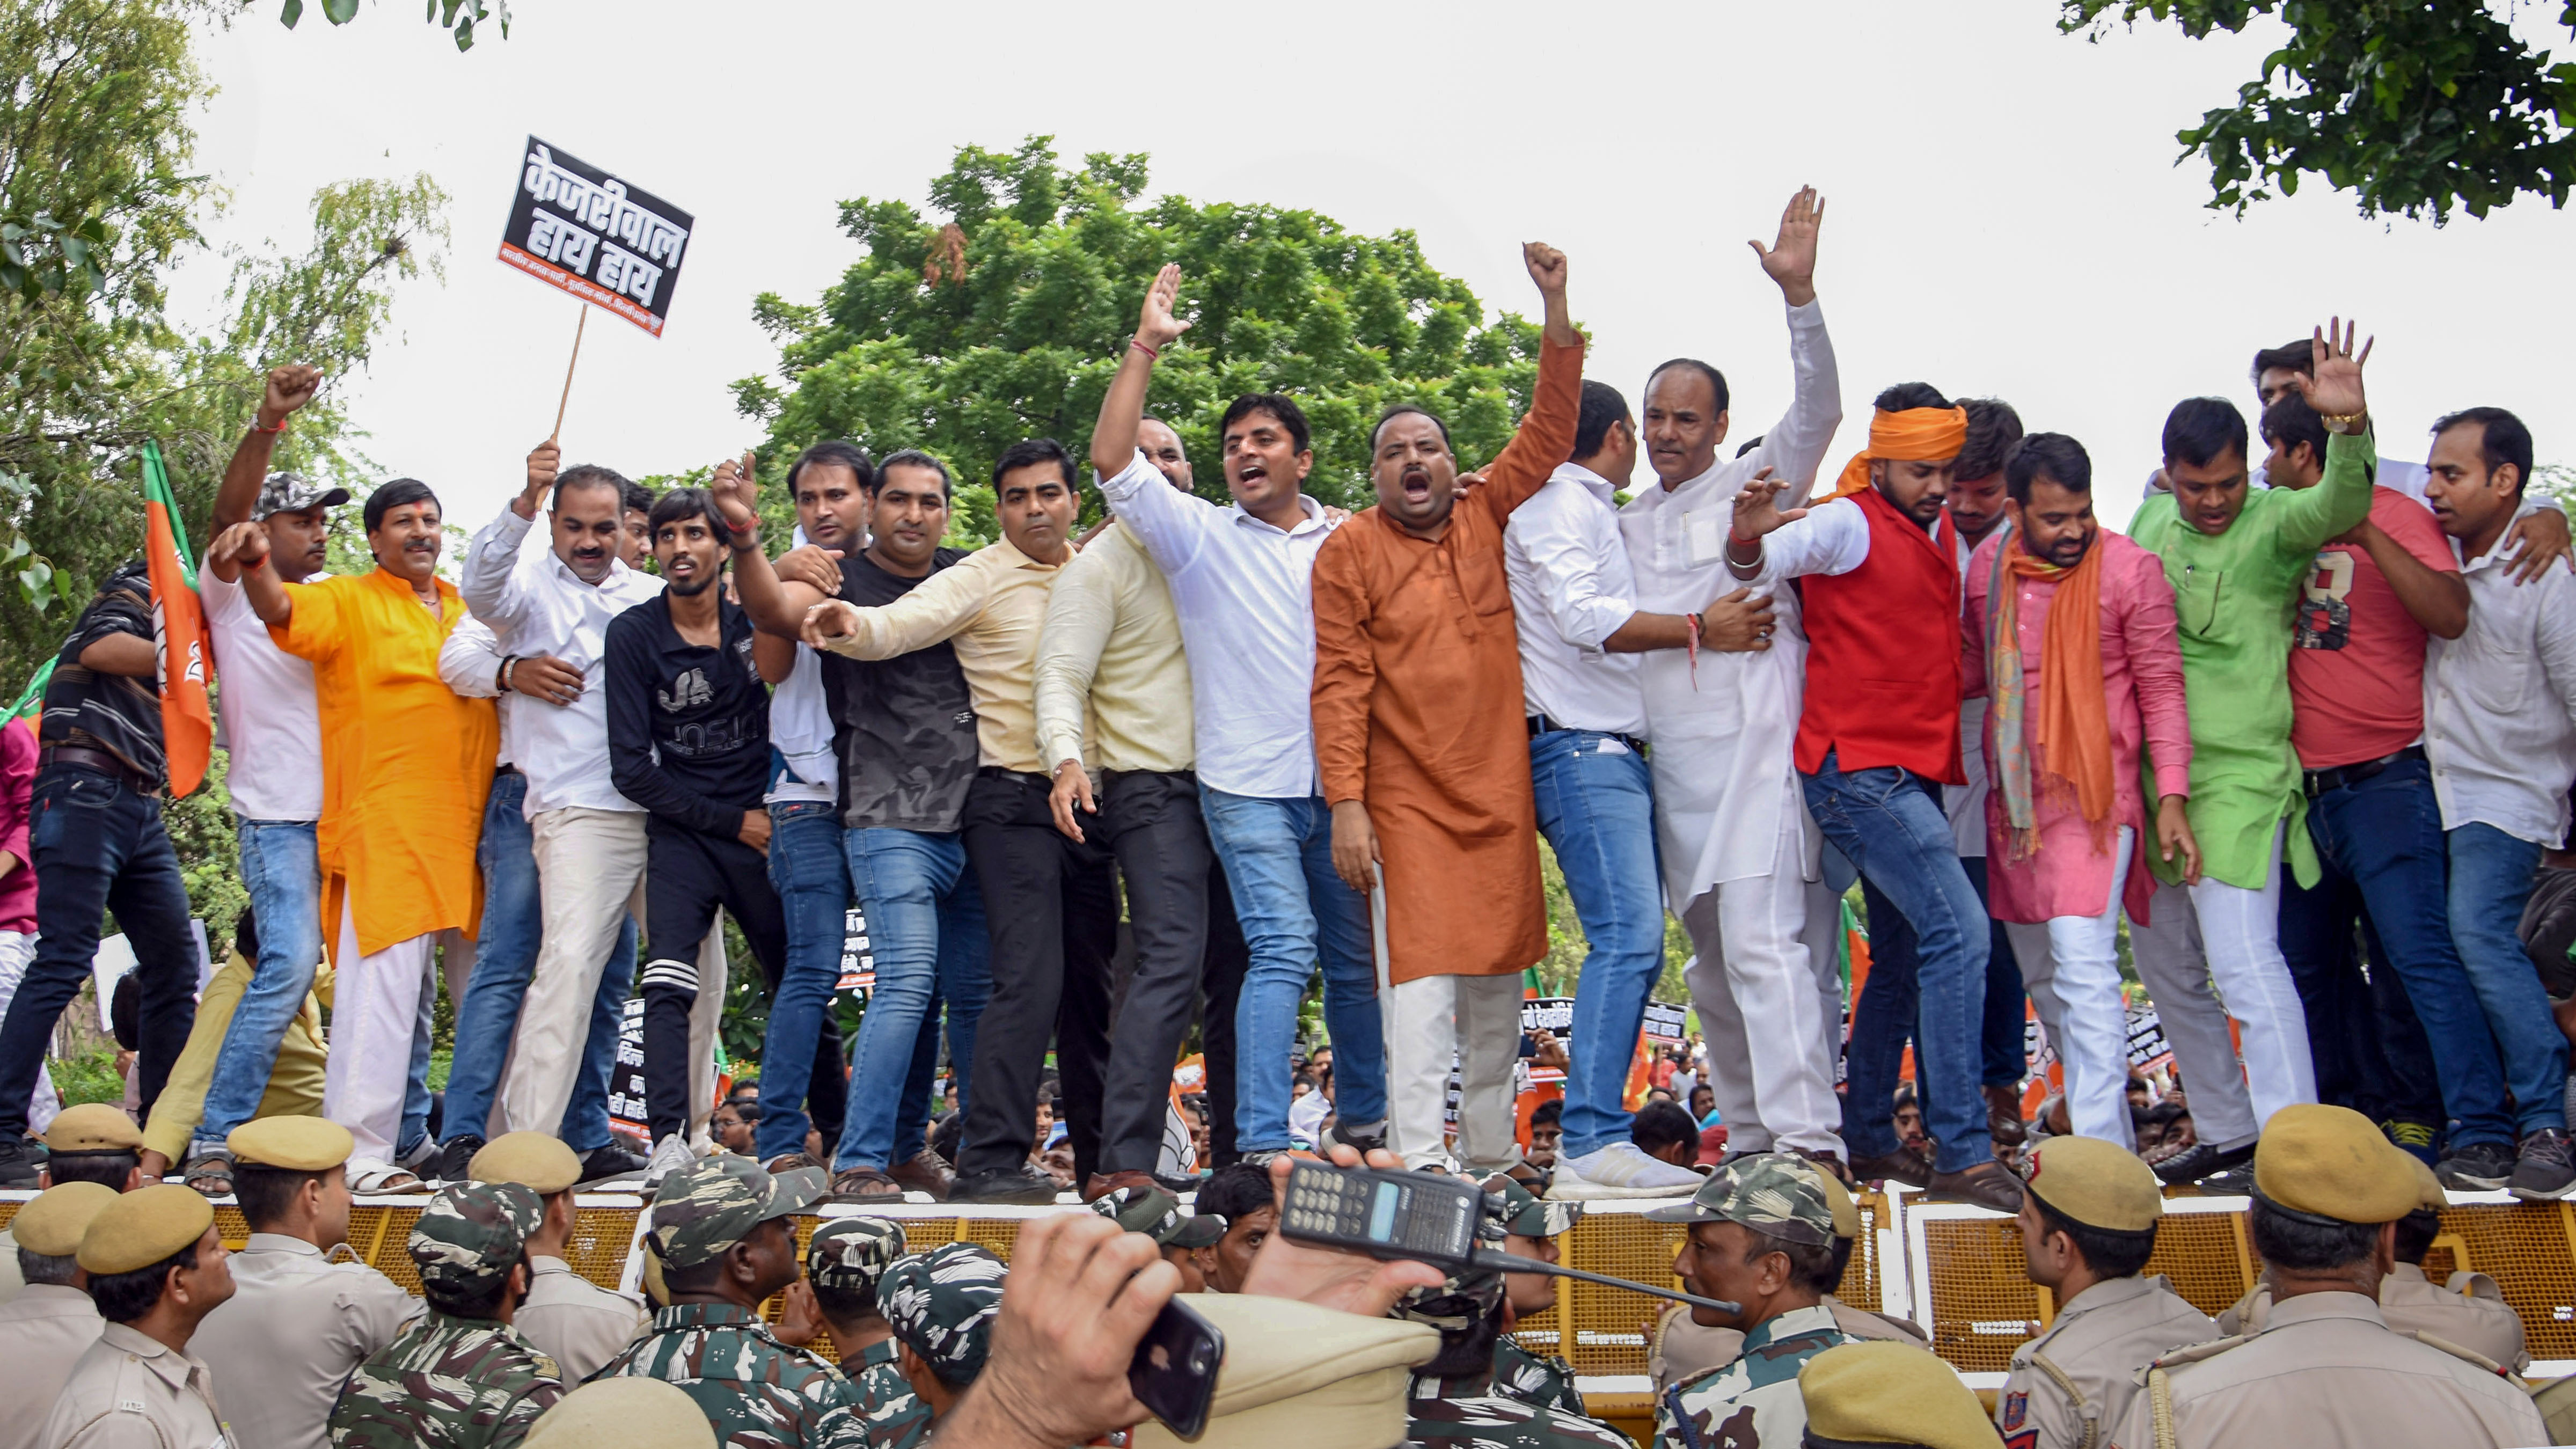 BJP workers stand on police barricades during a protest near the residence of Delhi chief minister Arvind Kejriwal over his NRC remark against party chief Manoj Tiwari, in New Delhi, Thursday, September 26, 2019